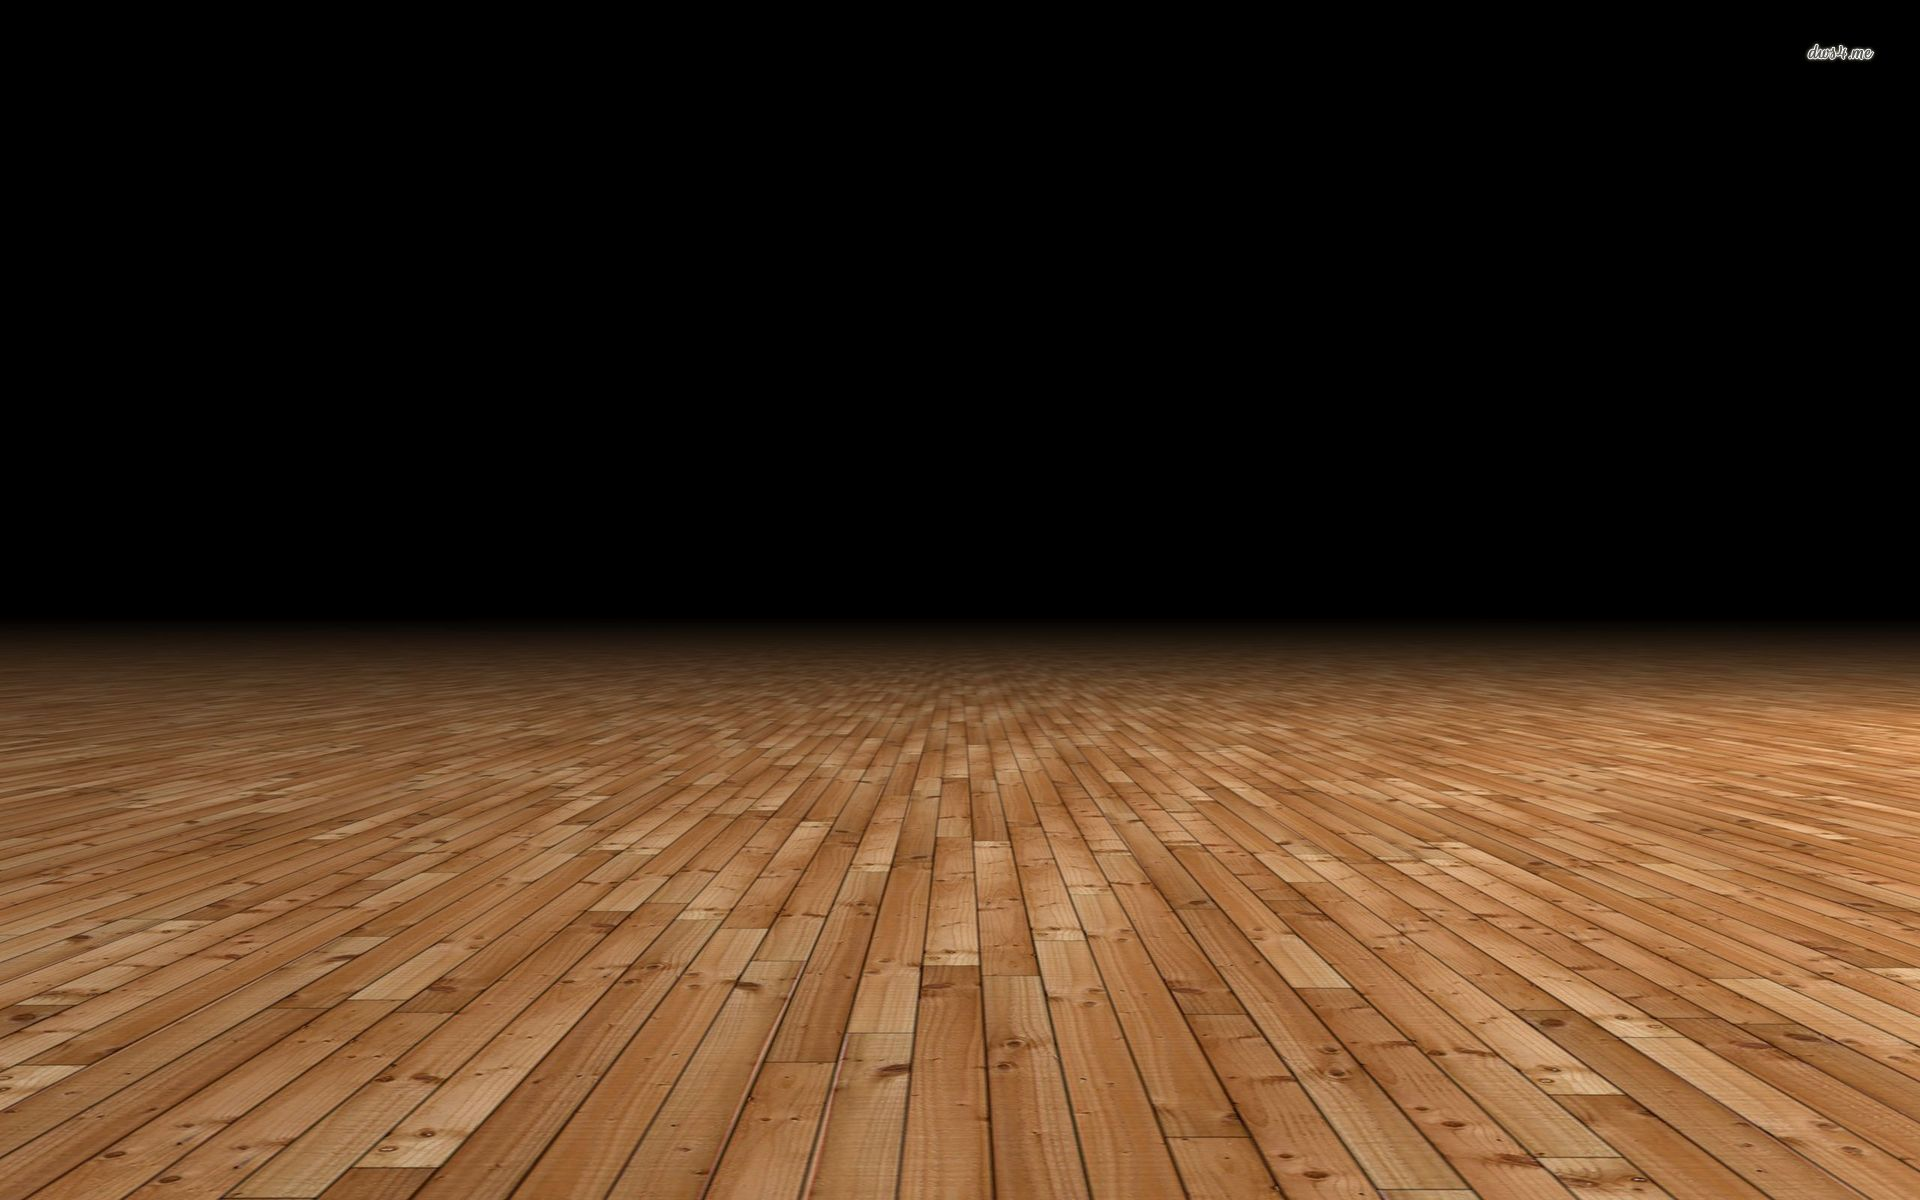 Wood floor wallpaper wallpapersafari for Floor 3d wallpaper